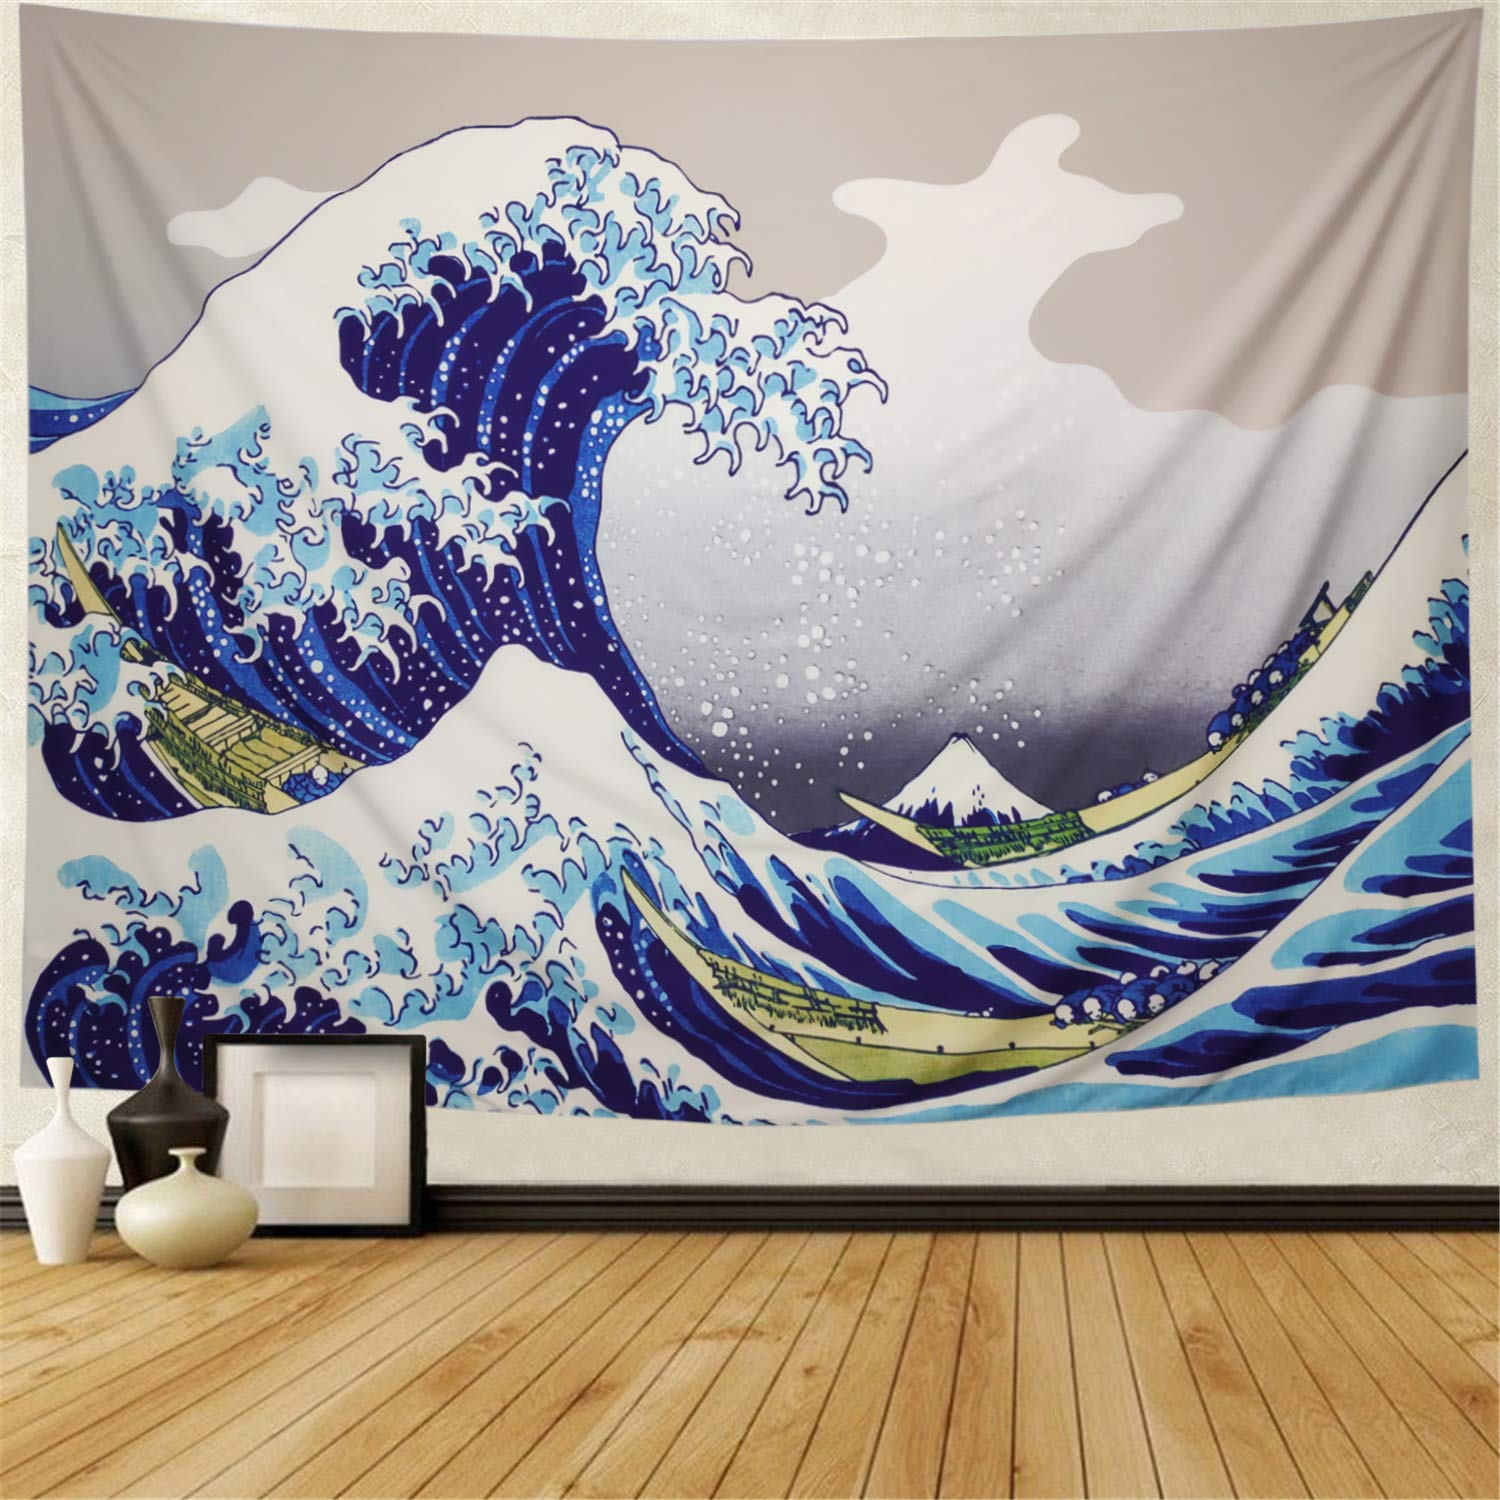 Lahashoker Tapestry Wall Tapestry The Great Wave Off Kanagawa Wall Hanging Tapestries Thirty-six Views of Mount Fuji Tapestry Ukiyo-e Print Japanese Art Tapestry for Living Room Bedroom Dorm Decor